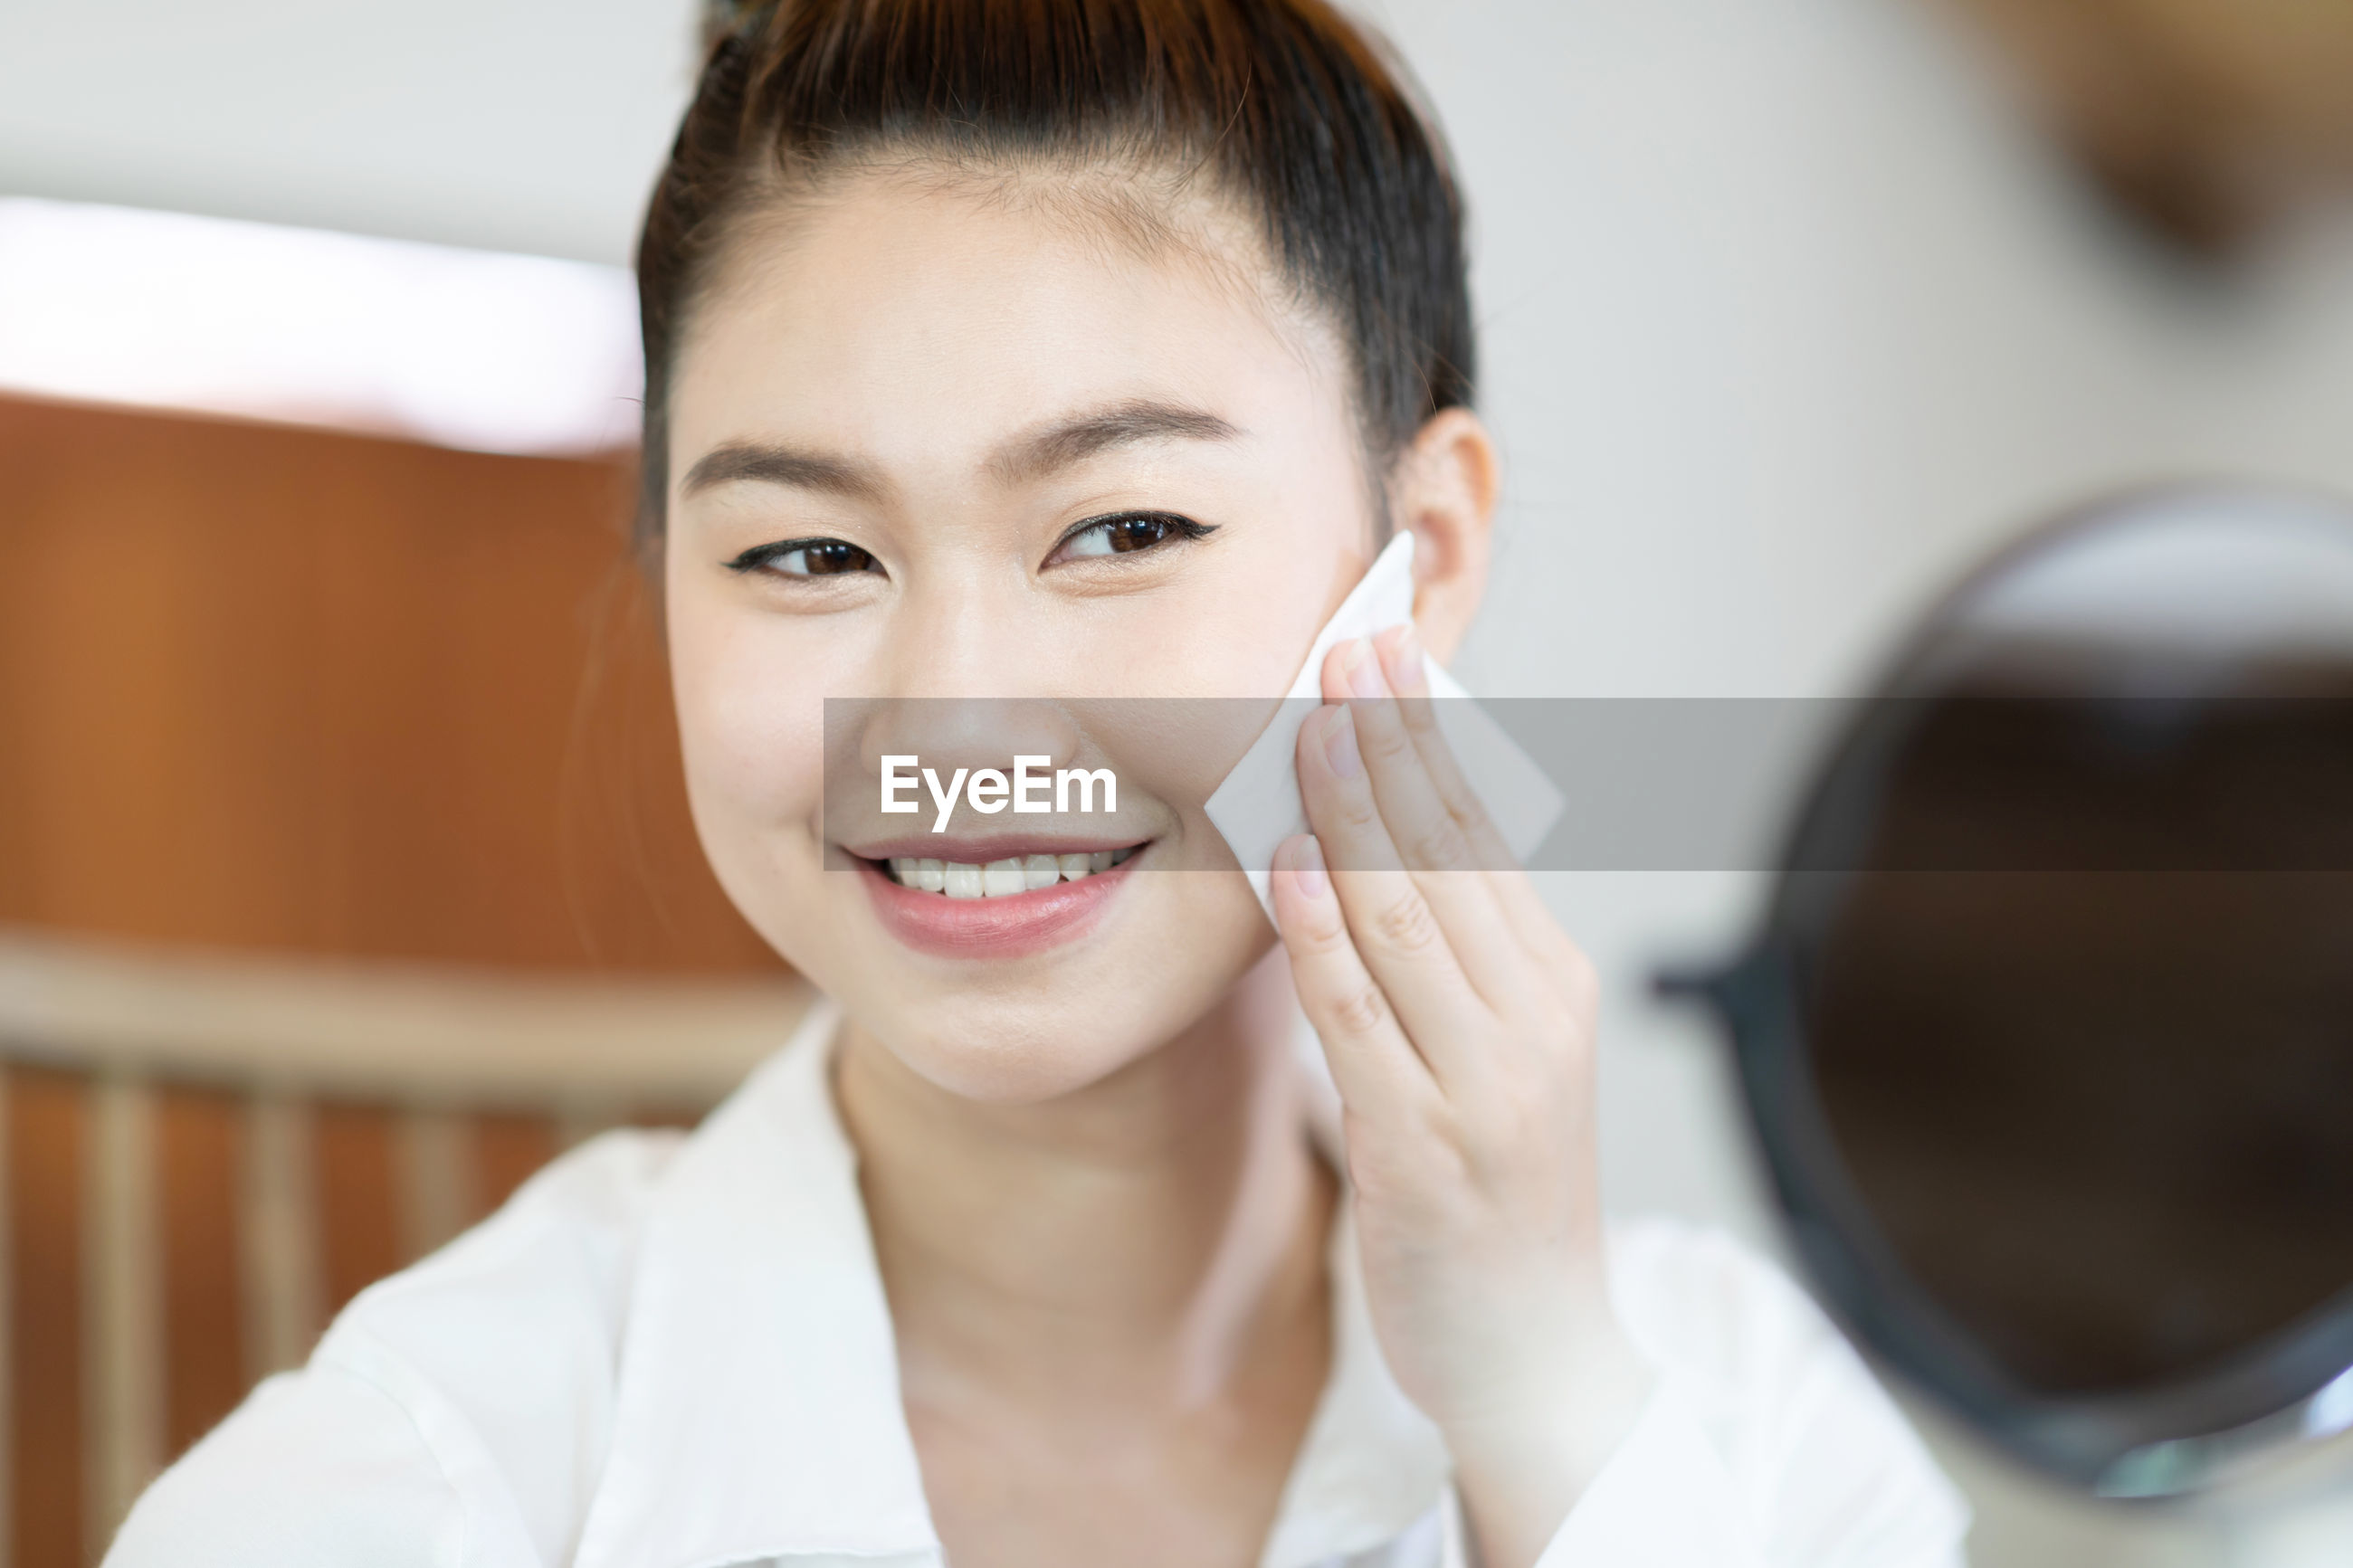 Smiling woman wiping face